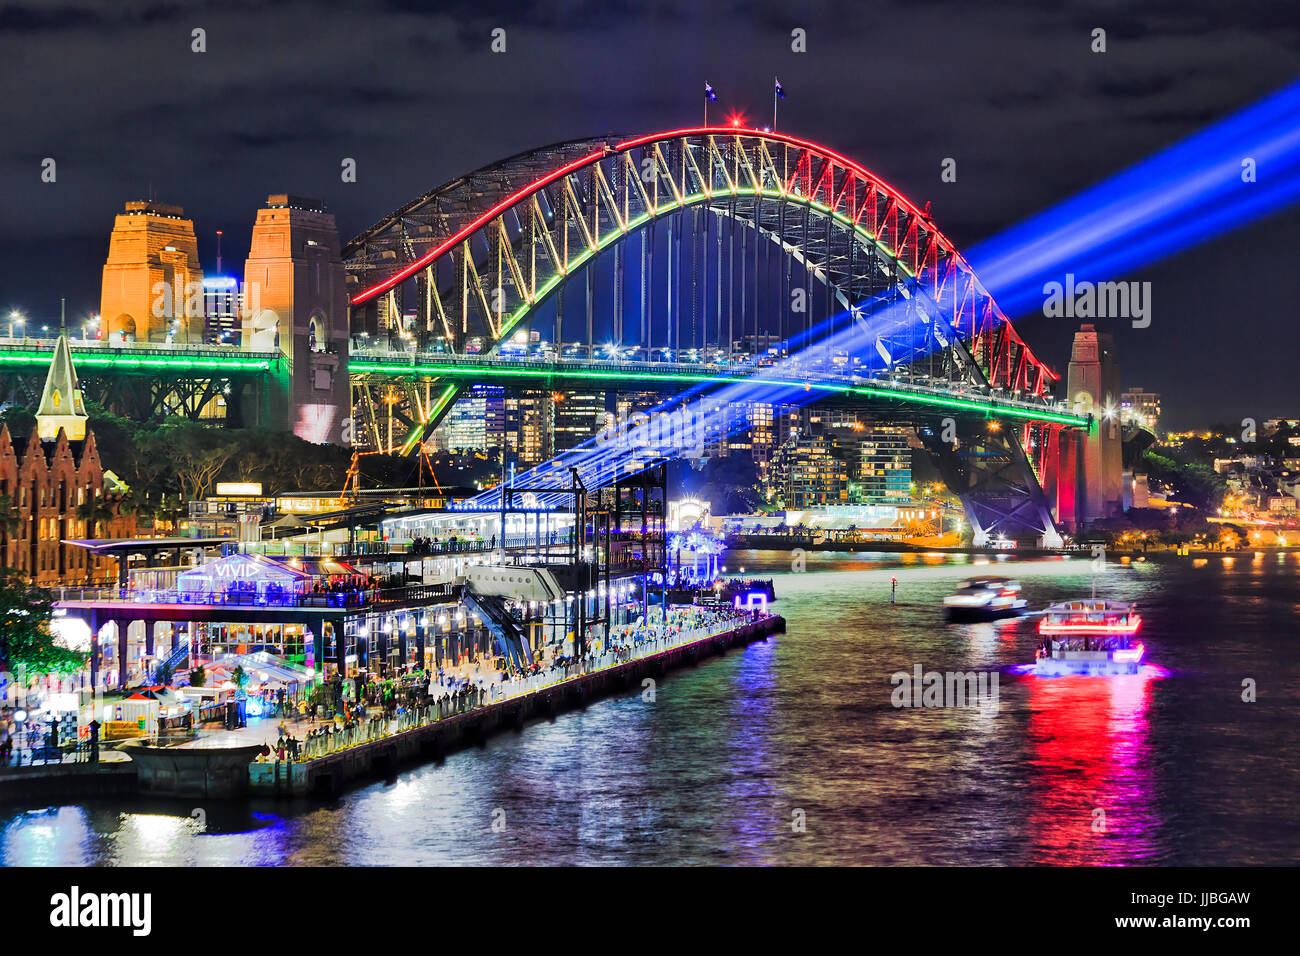 Sydney harbour bridge brightly illuminated and sending blue beams of projector light during Vivid Sydney light and ideas show in Sydney CBD as seen fr Stock Photo